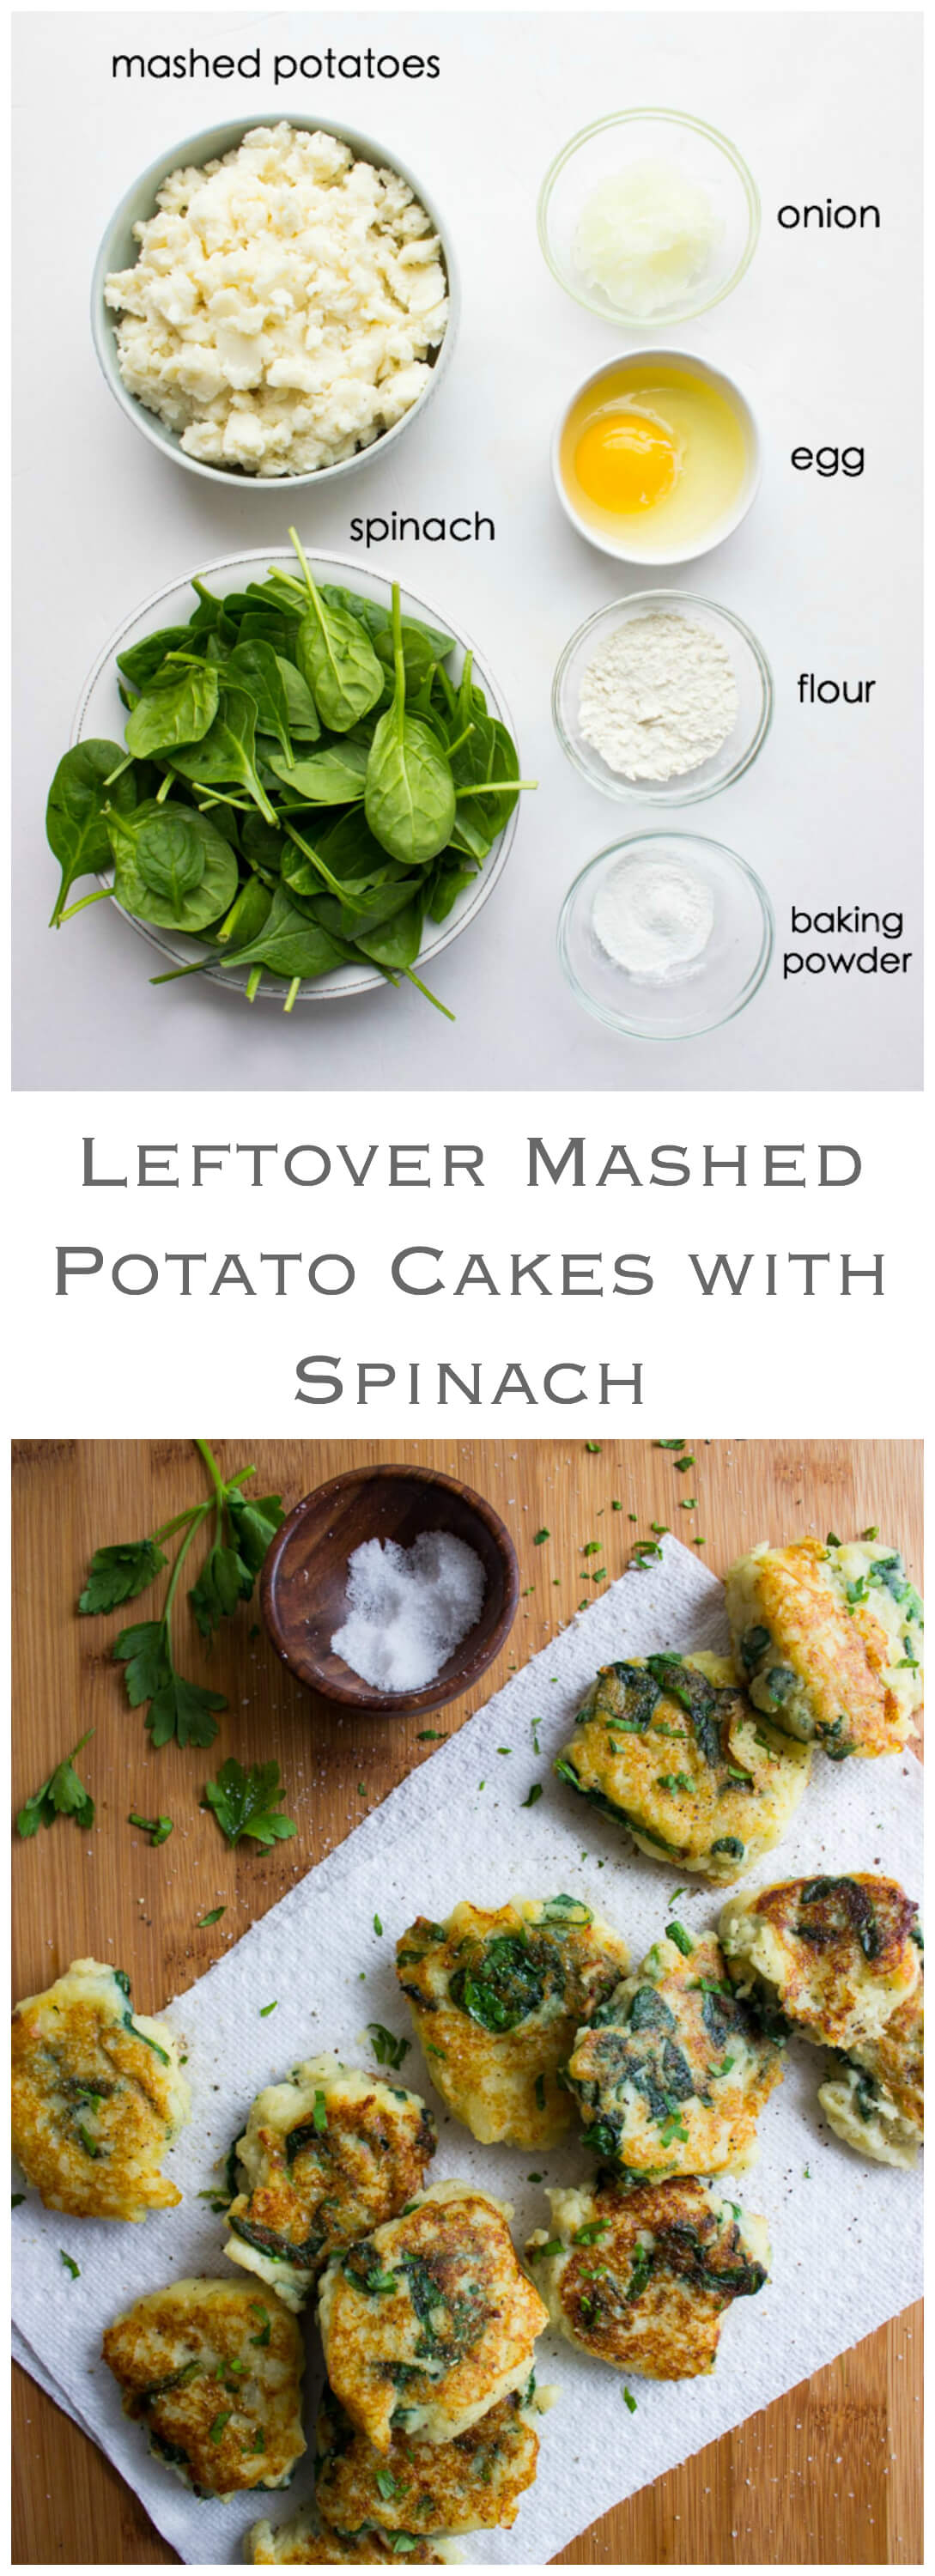 Leftover Mashed Potato Cakes with Spinach - revamp leftover mashed potatoes into a delicious side dish with only few simple ingredients | littlebroken.com @littlebroken